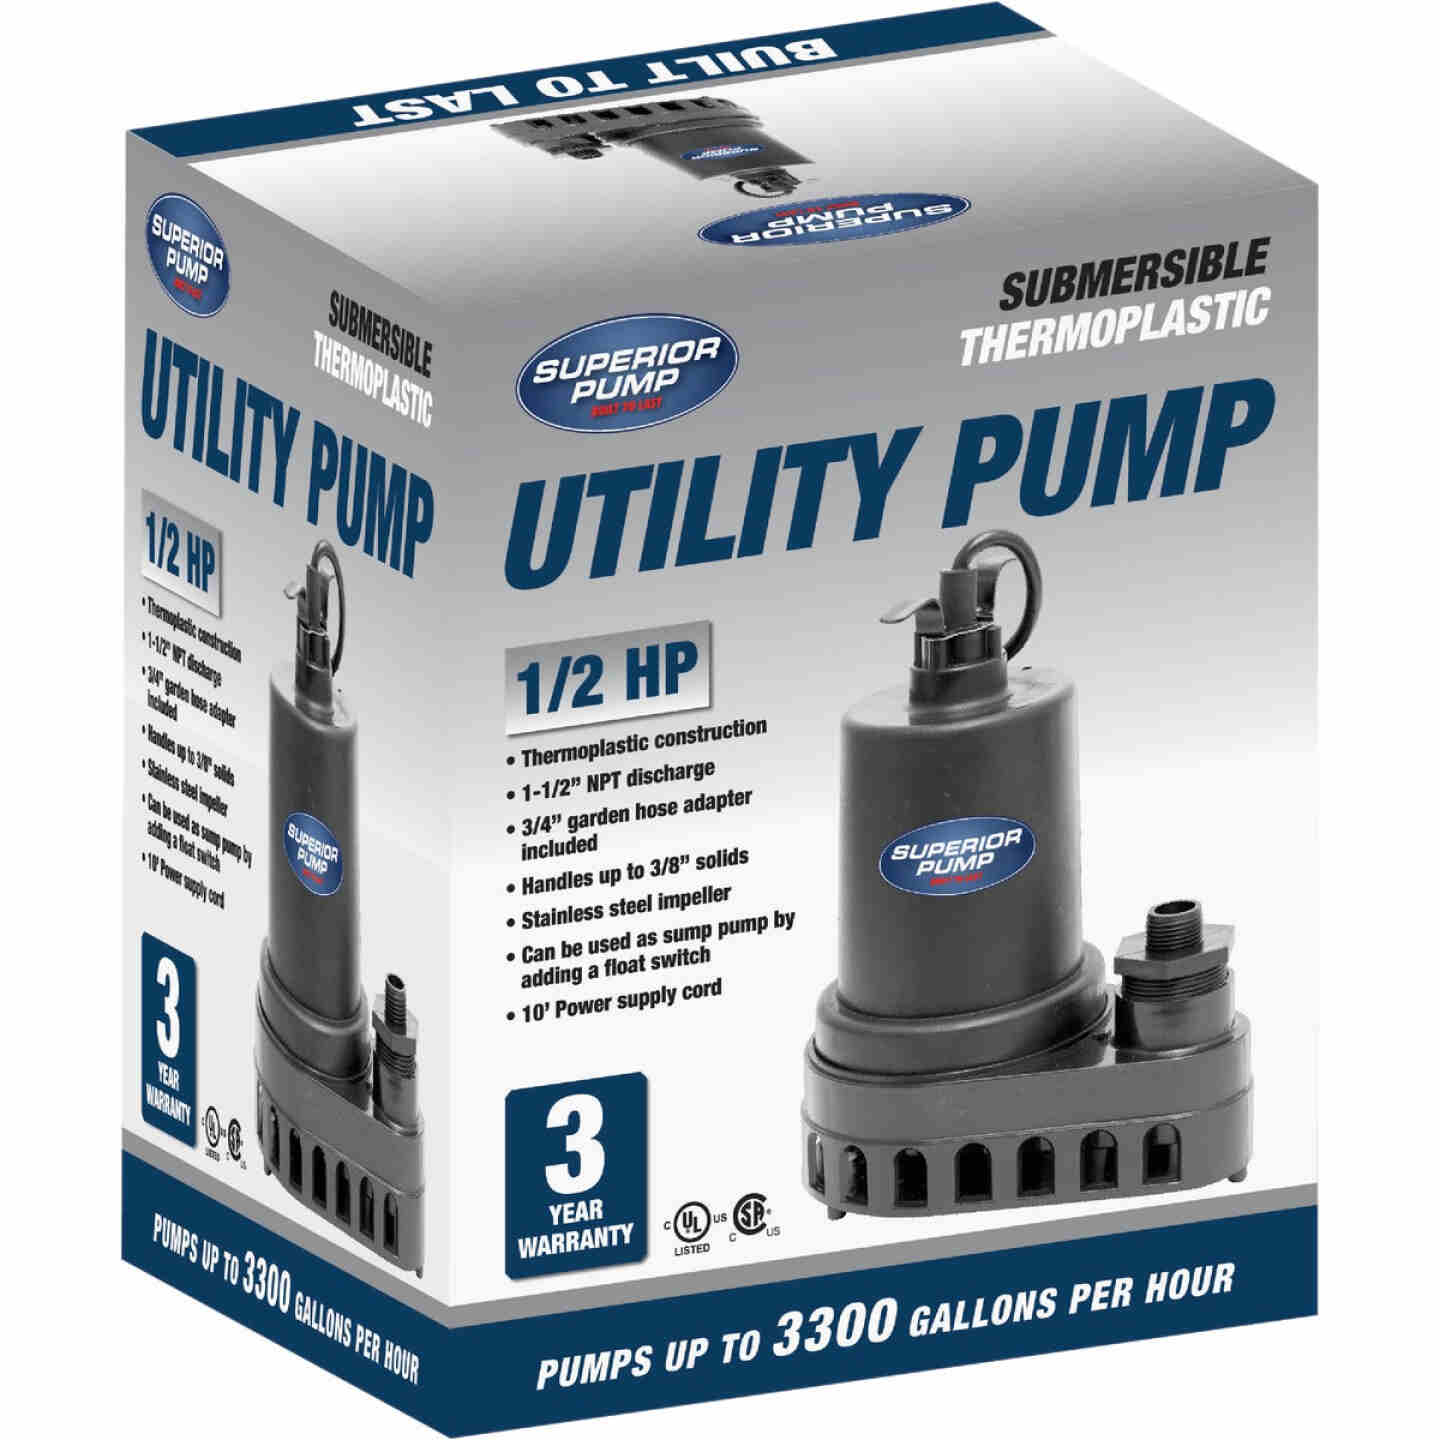 Superior Pump 1/2 HP 3300 GPH Thermoplastic Submersible Utility Pump Image 3